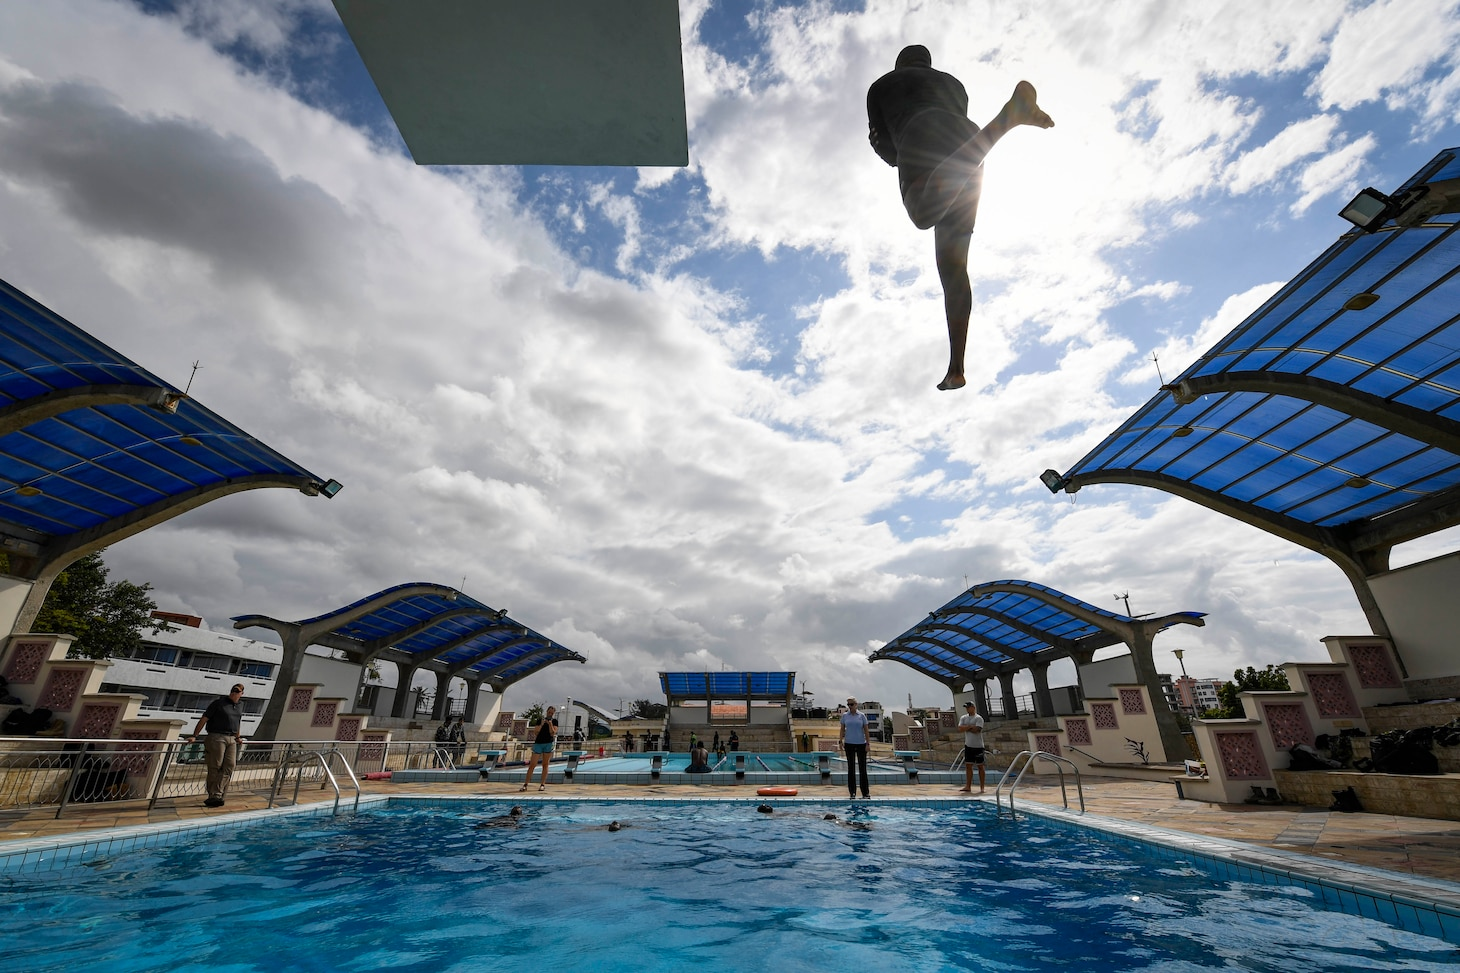 (July 28, 2021) A Mozambique Sailor jumps off a high dive as part of water survival training during exercise Cutlass Express 2021 at the Bandari Maritime Academy in Mombasa, Kenya, July 28, 2021. Cutlass Express is designed to improve regional cooperation, maritime domain awareness and information sharing practices to increase capabilities between the U.S., East African and Western Indian Ocean nations to counter illicit maritime activity.